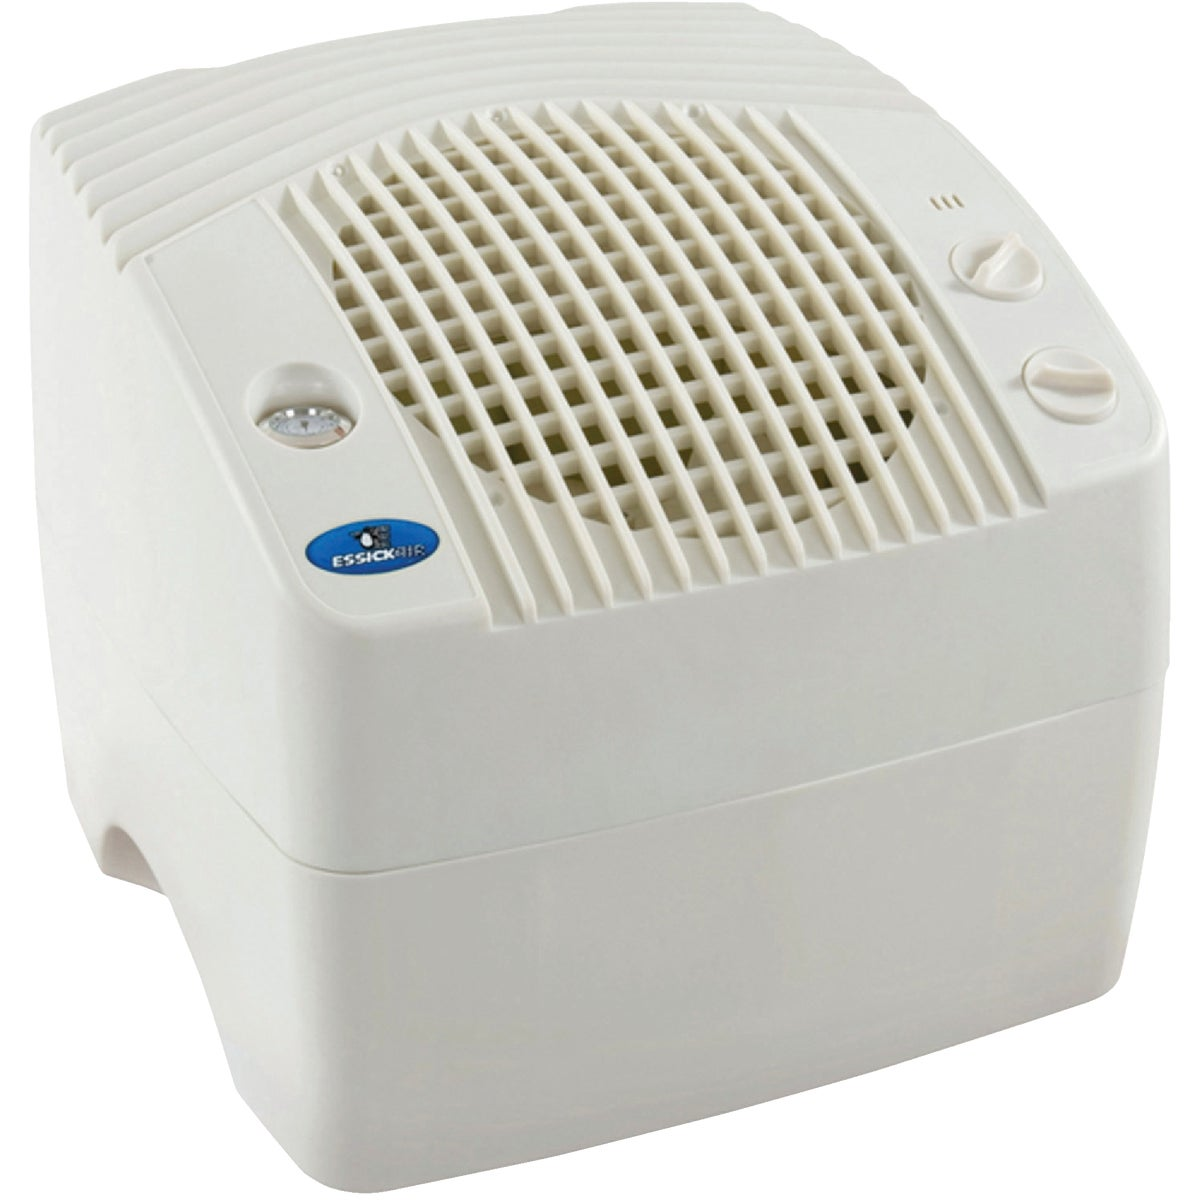 TABLETOP WHT HUMIDIFIER - E35 000 by Essick Air Products